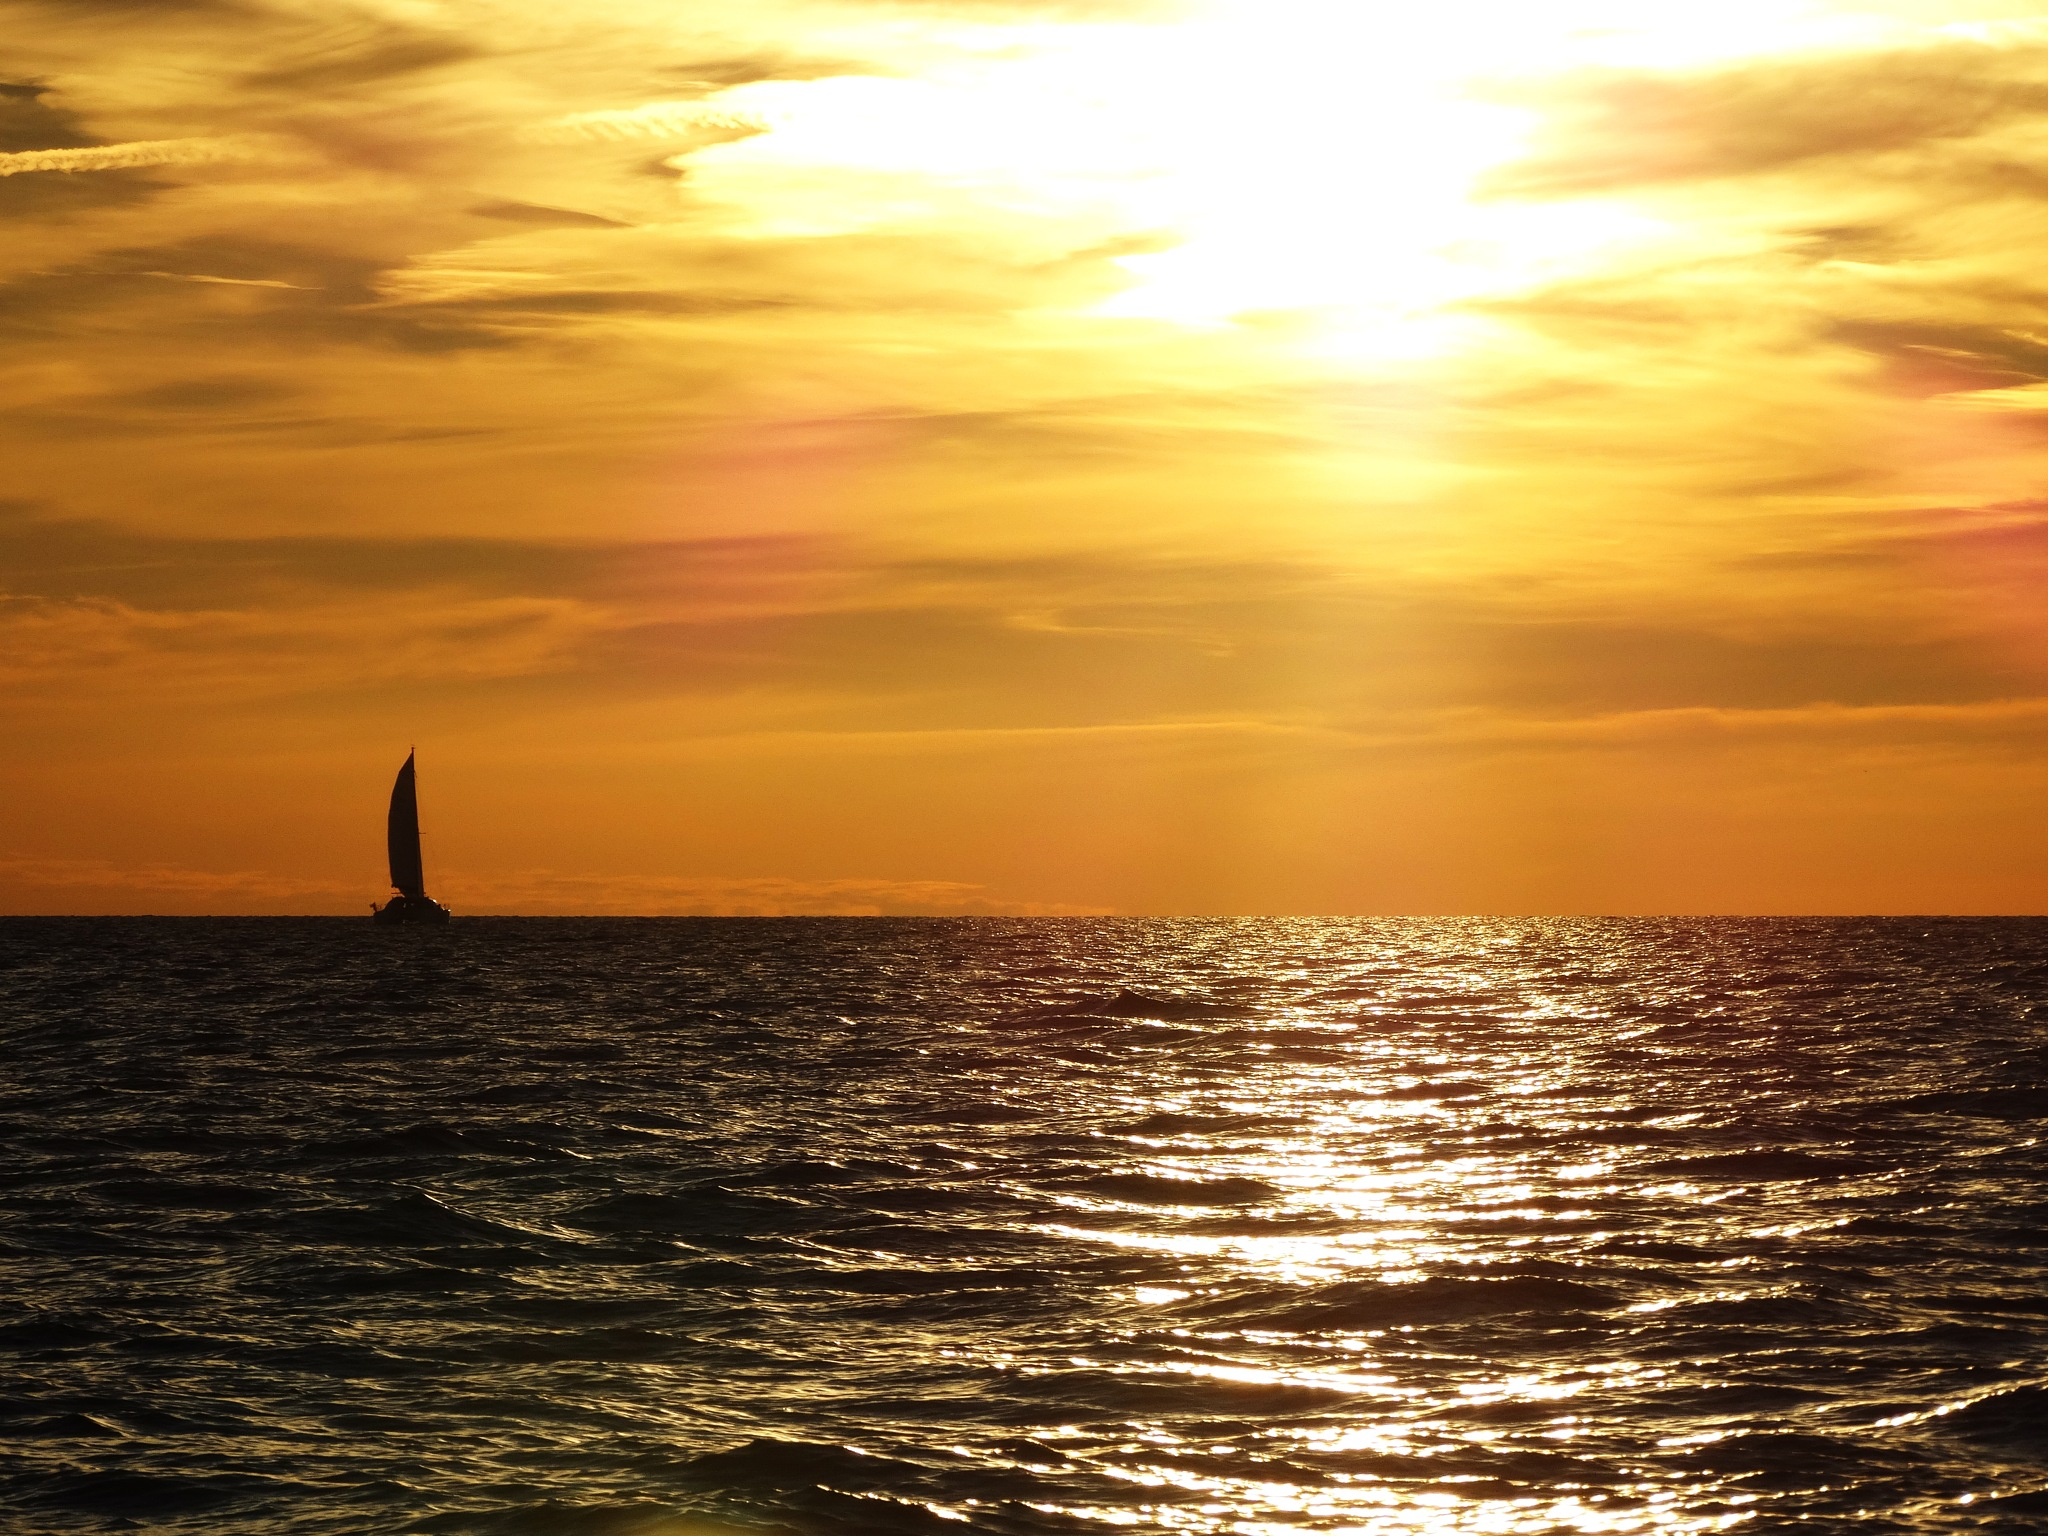 Golden Sunset and lonely sail by Ivars Duntavs